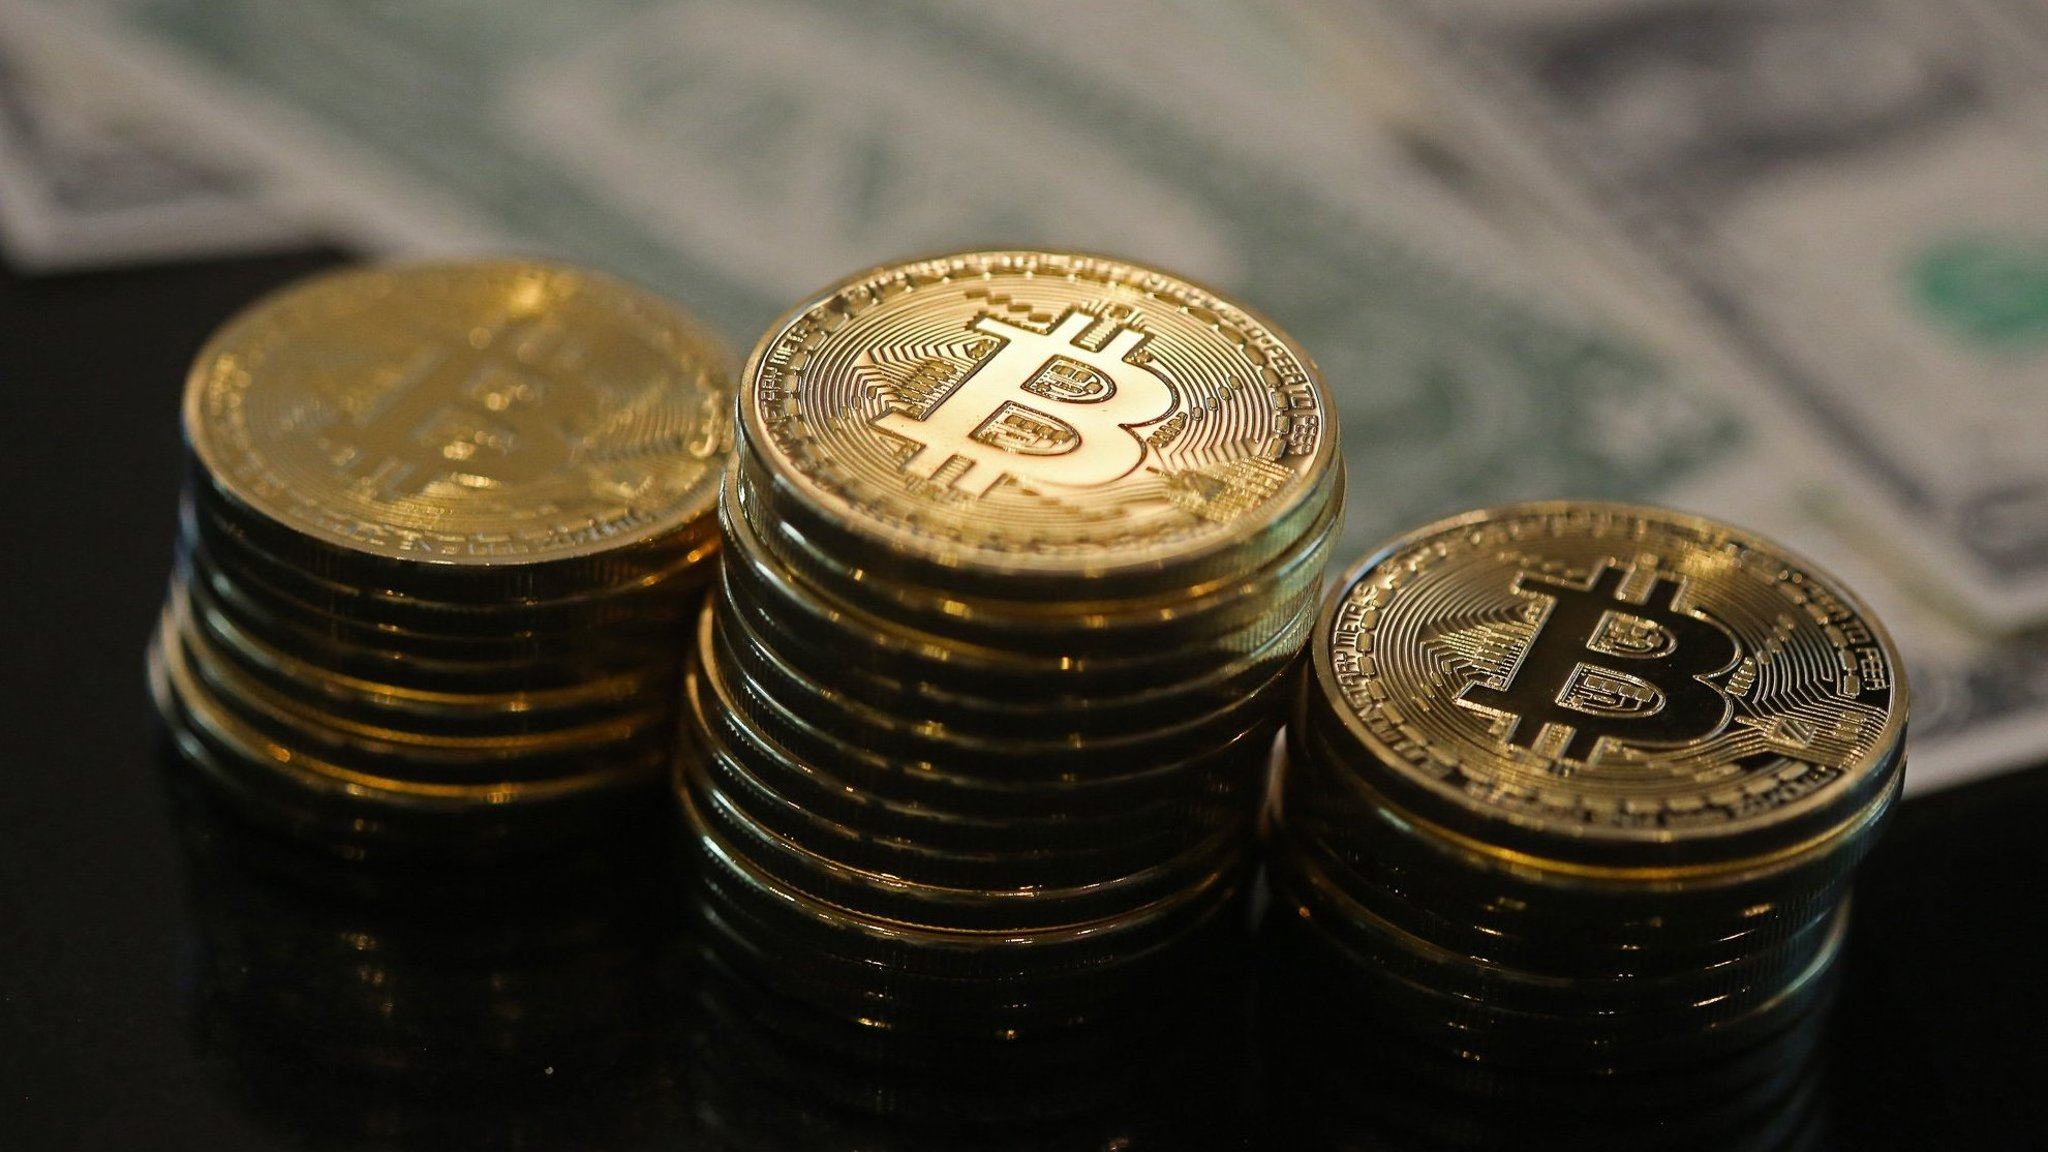 US regulator gives green light for bitcoin futures trading